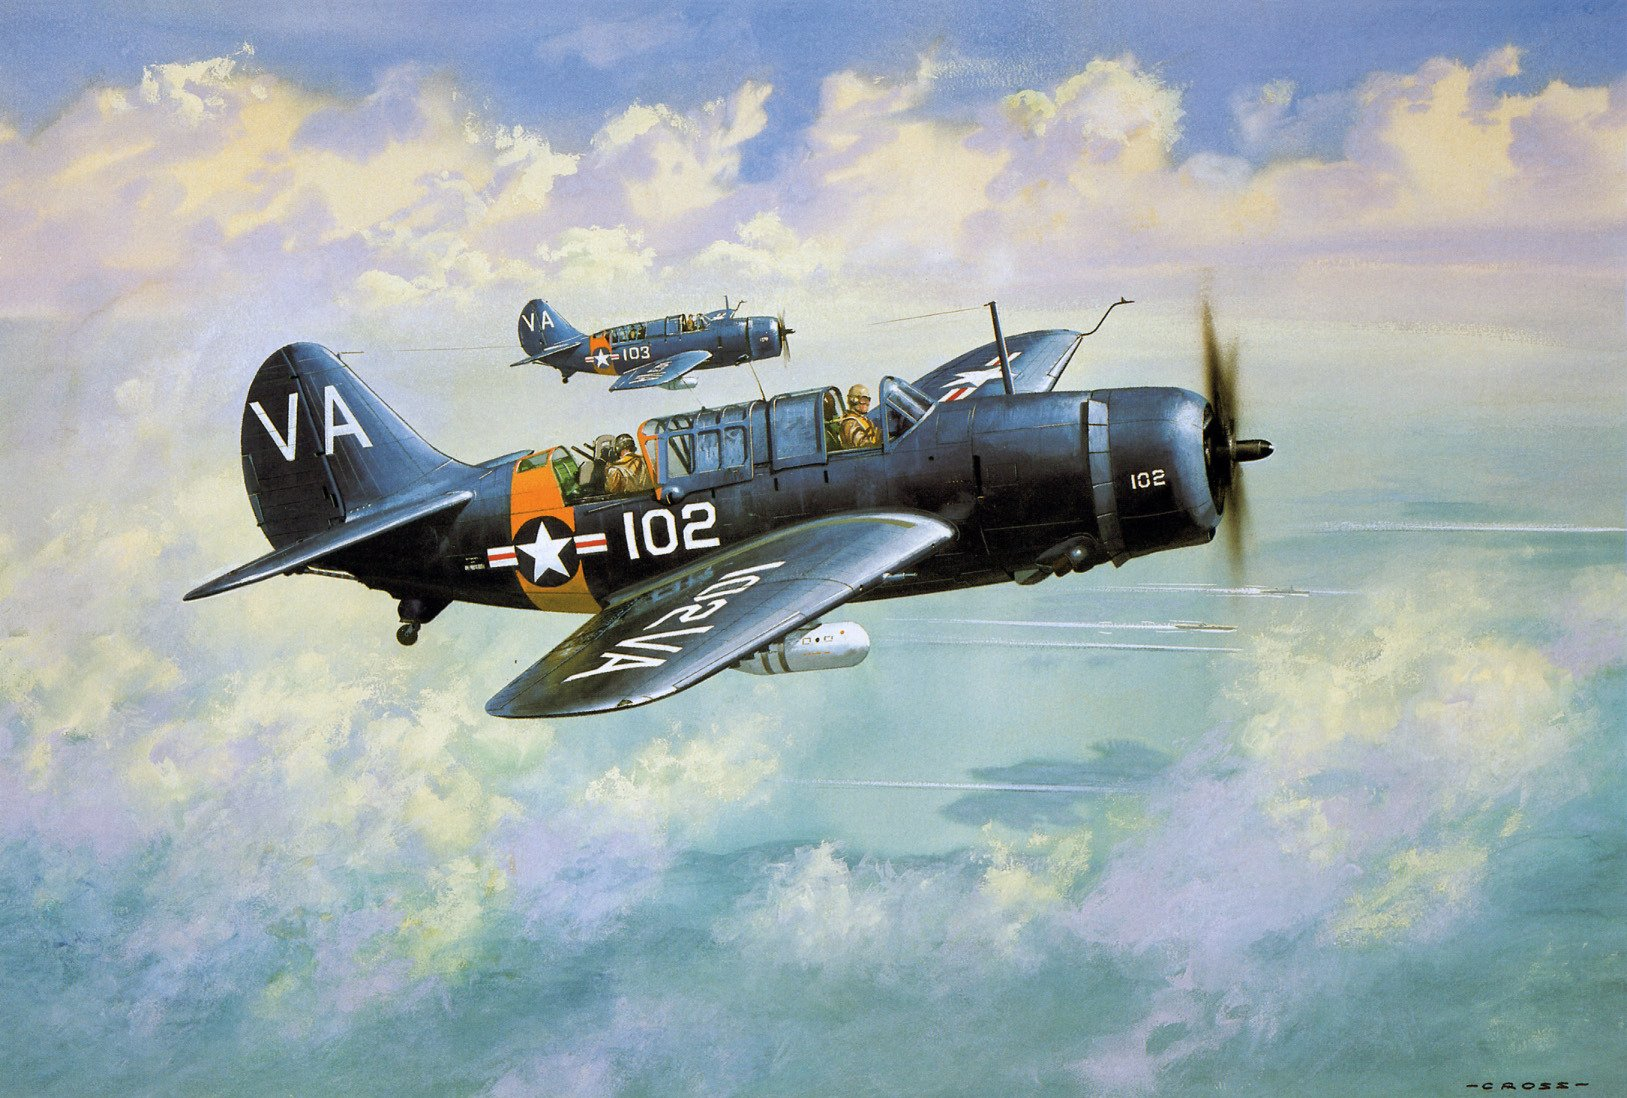 A pair of SBD Dauntless Wallpaper and Background Image 1627x1098 1627x1098